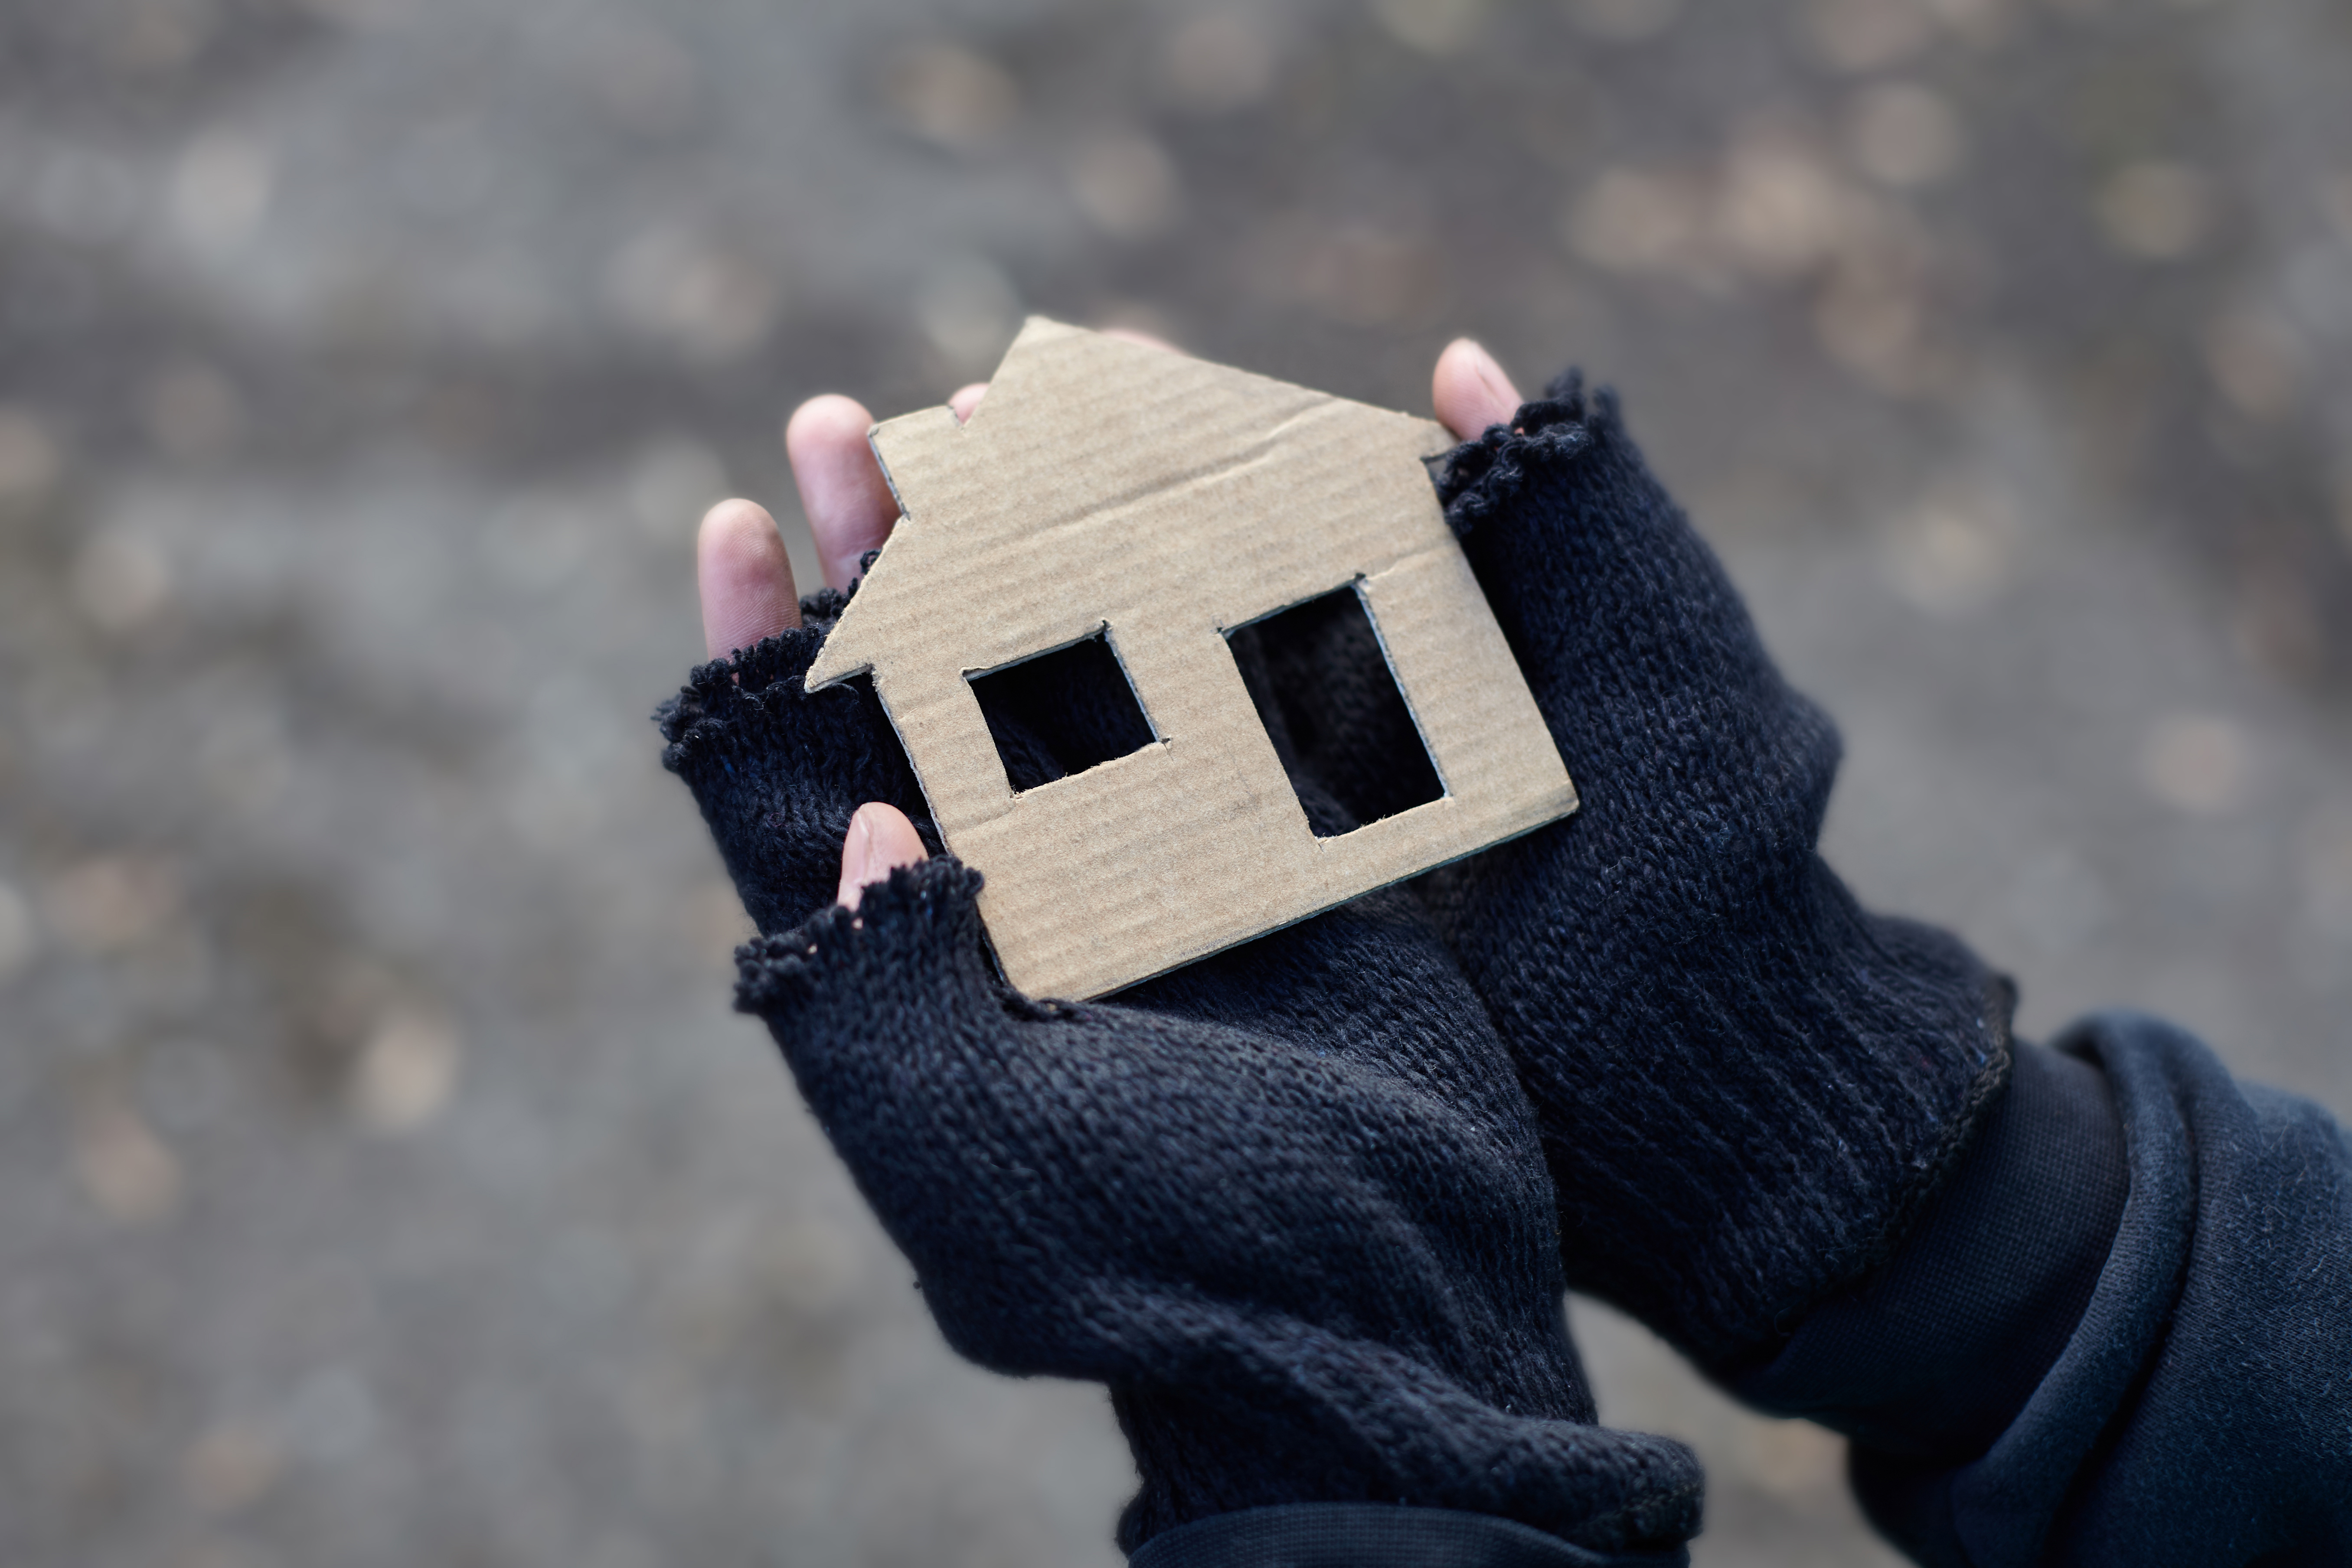 Two hands holding a cut out of a house